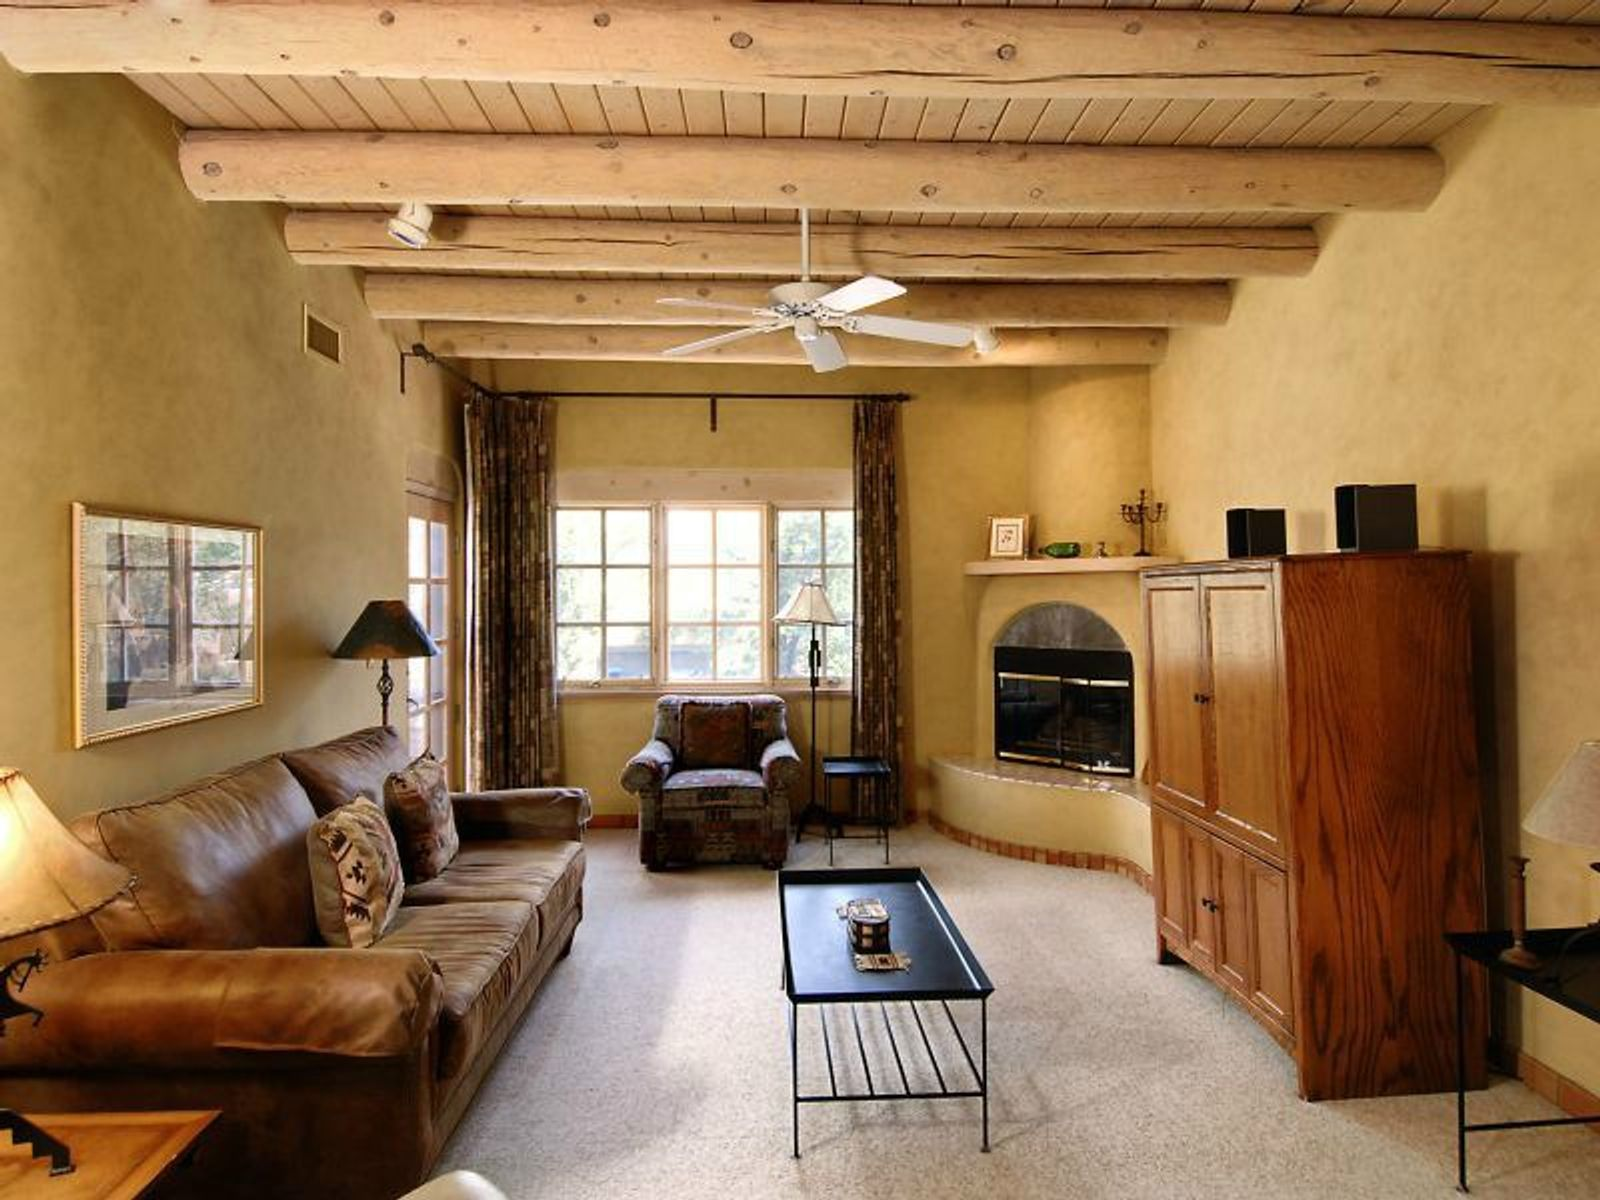 3101 Old Pecos Trail #215., Santa Fe NM Condominium - Santa Fe Real Estate